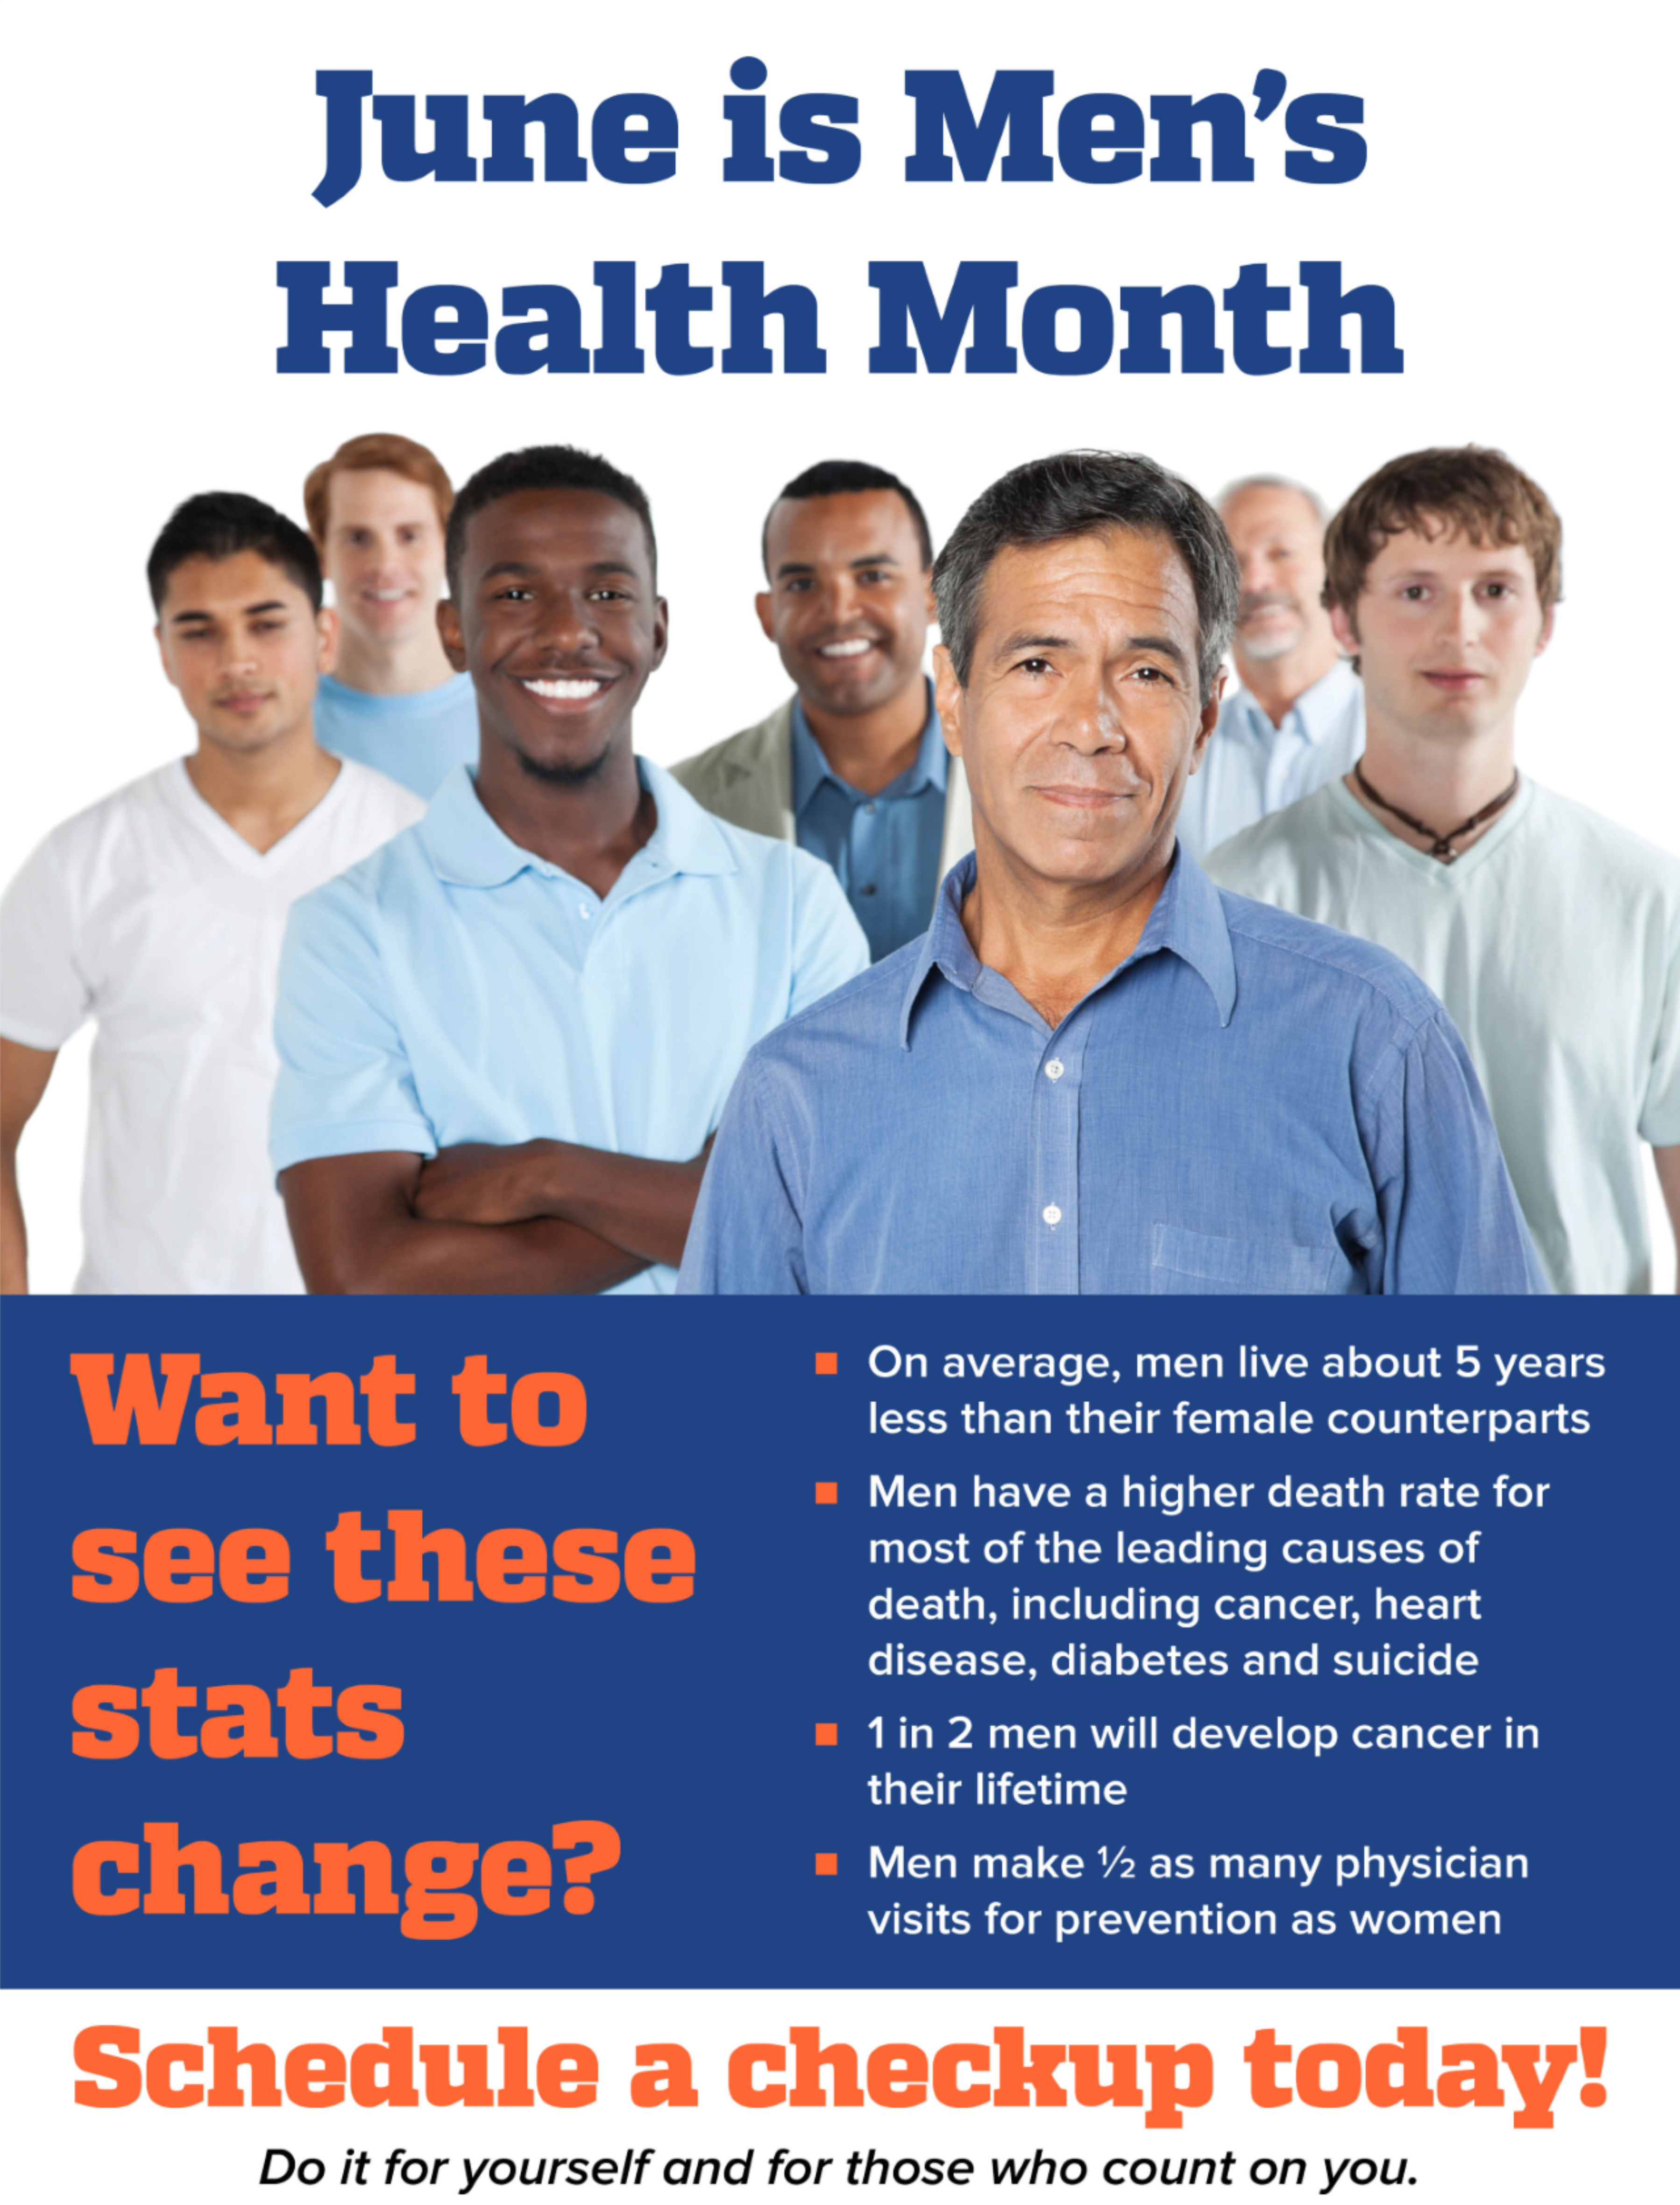 picture of men's health month poster in english